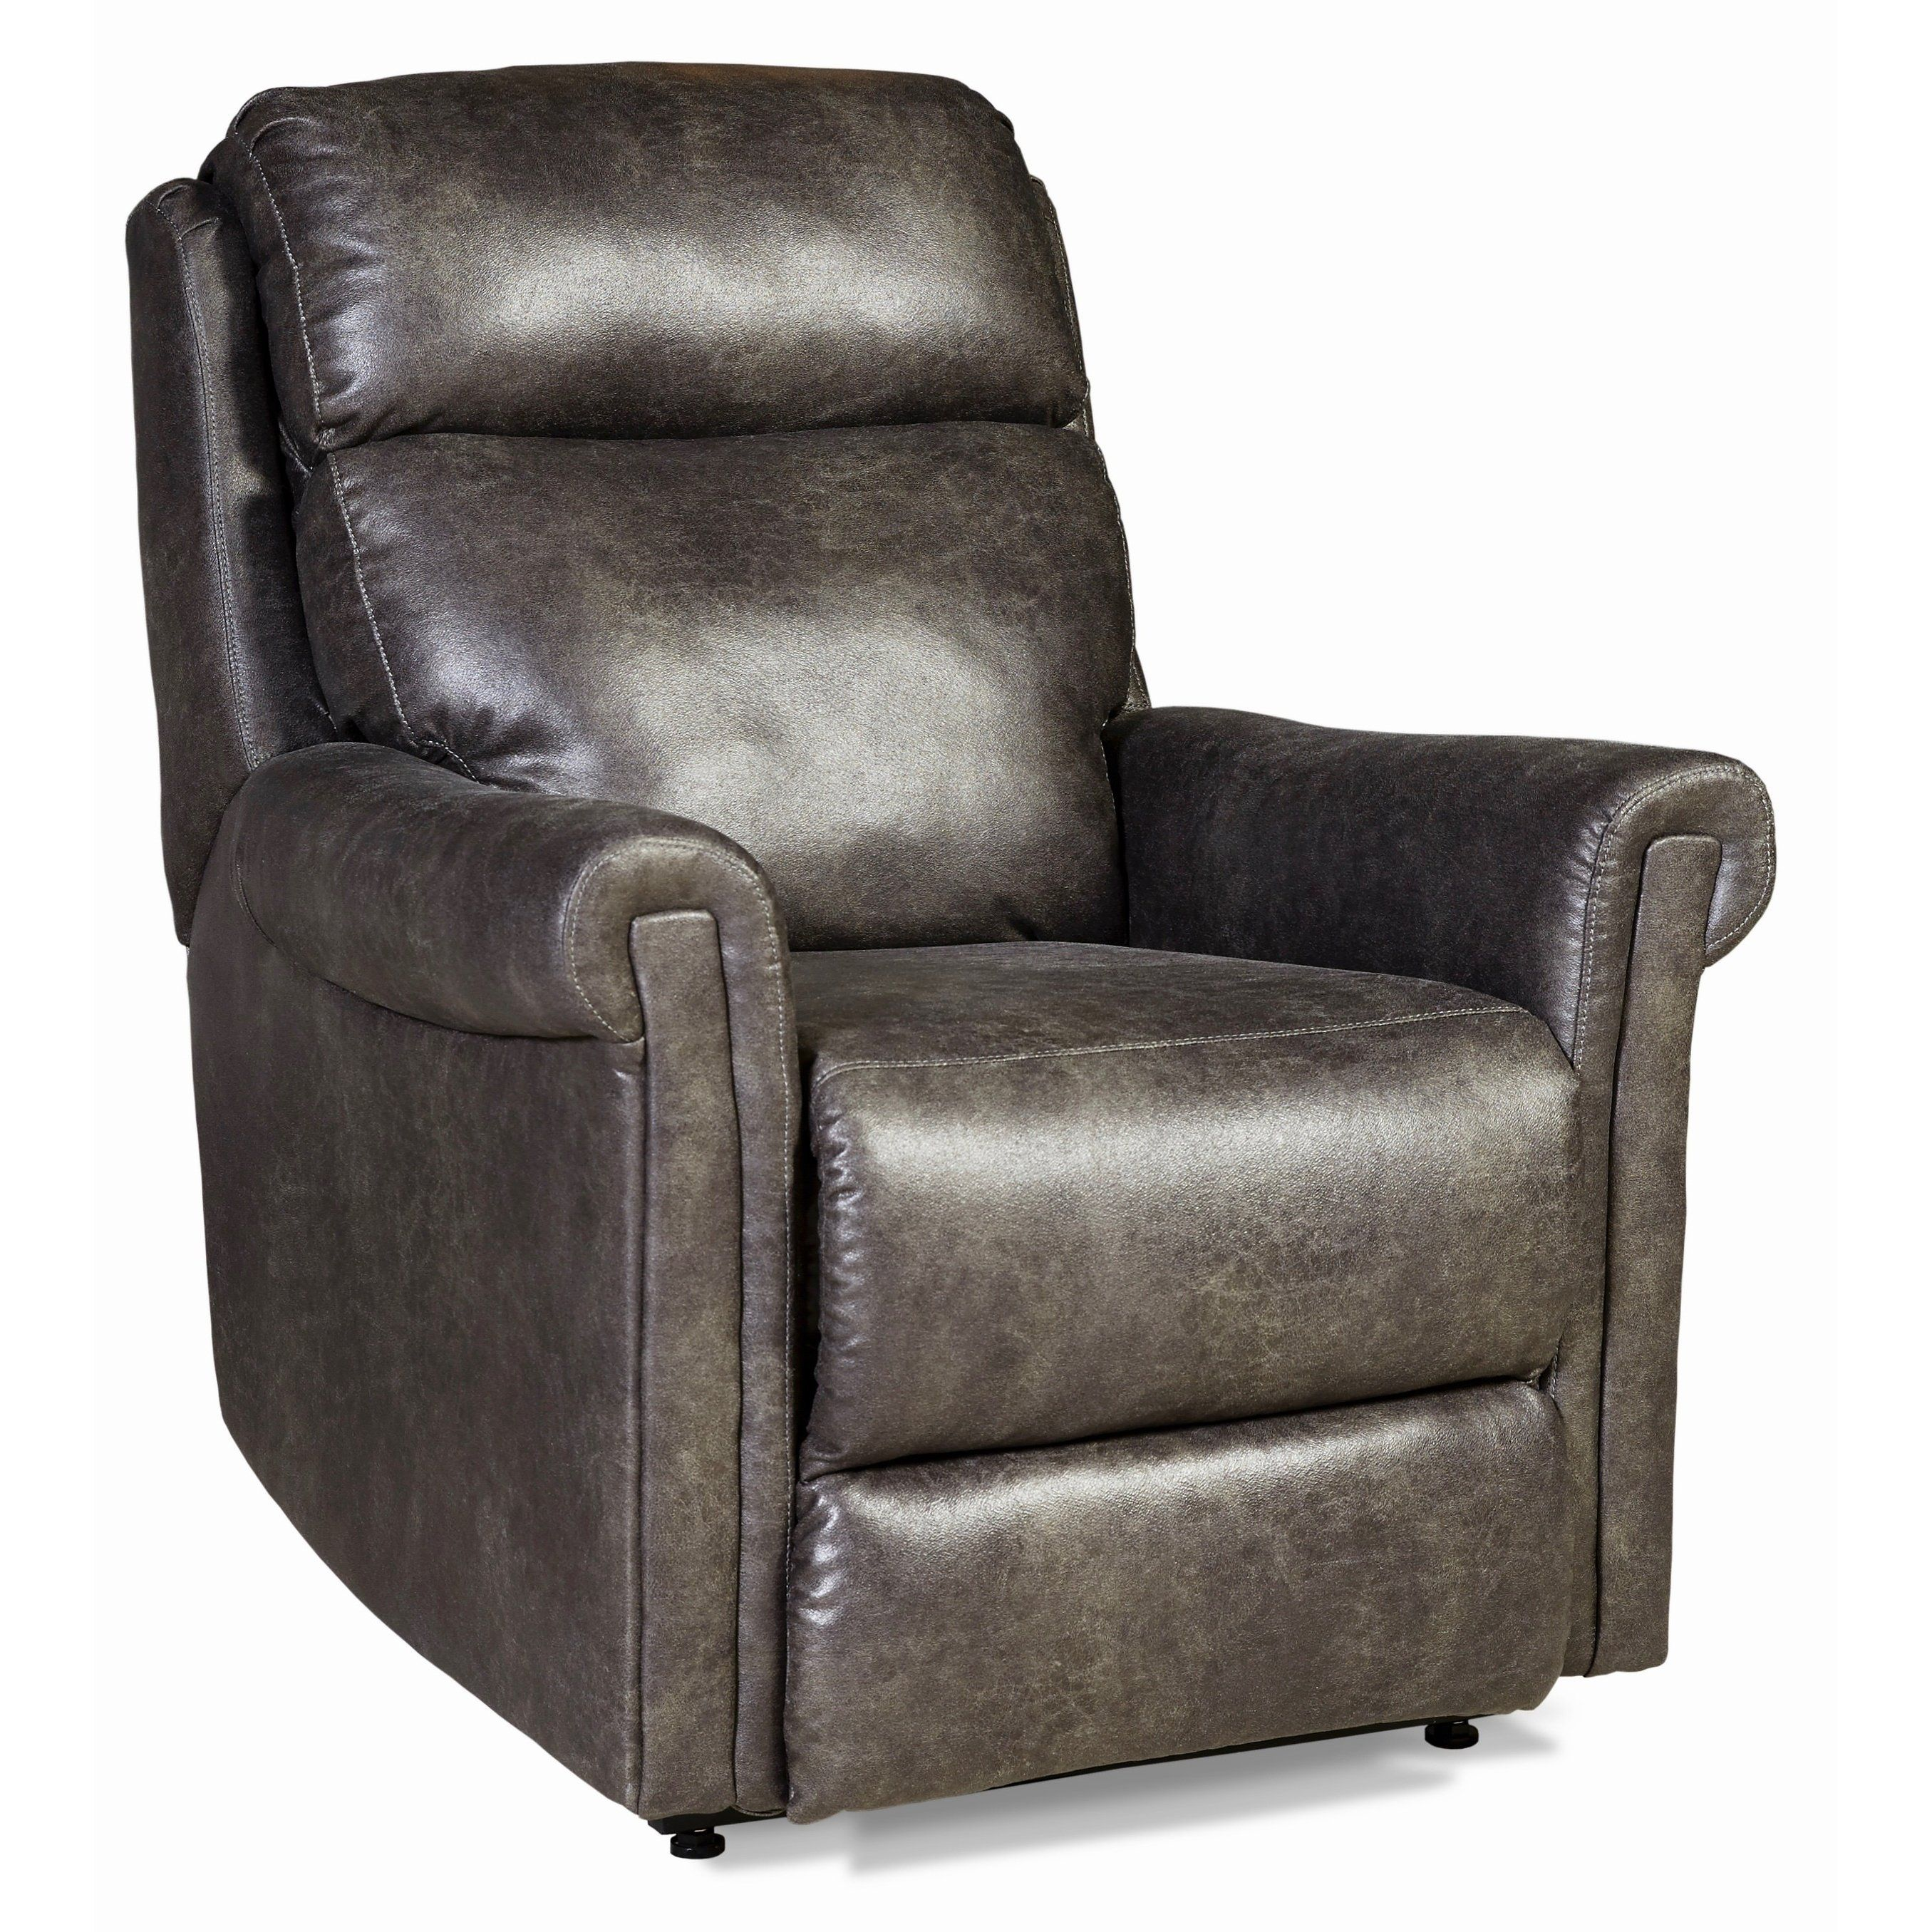 Online Shopping Bedding Furniture Electronics Jewelry Clothing More Wall Hugger Recliners Lift Recliners Recliner